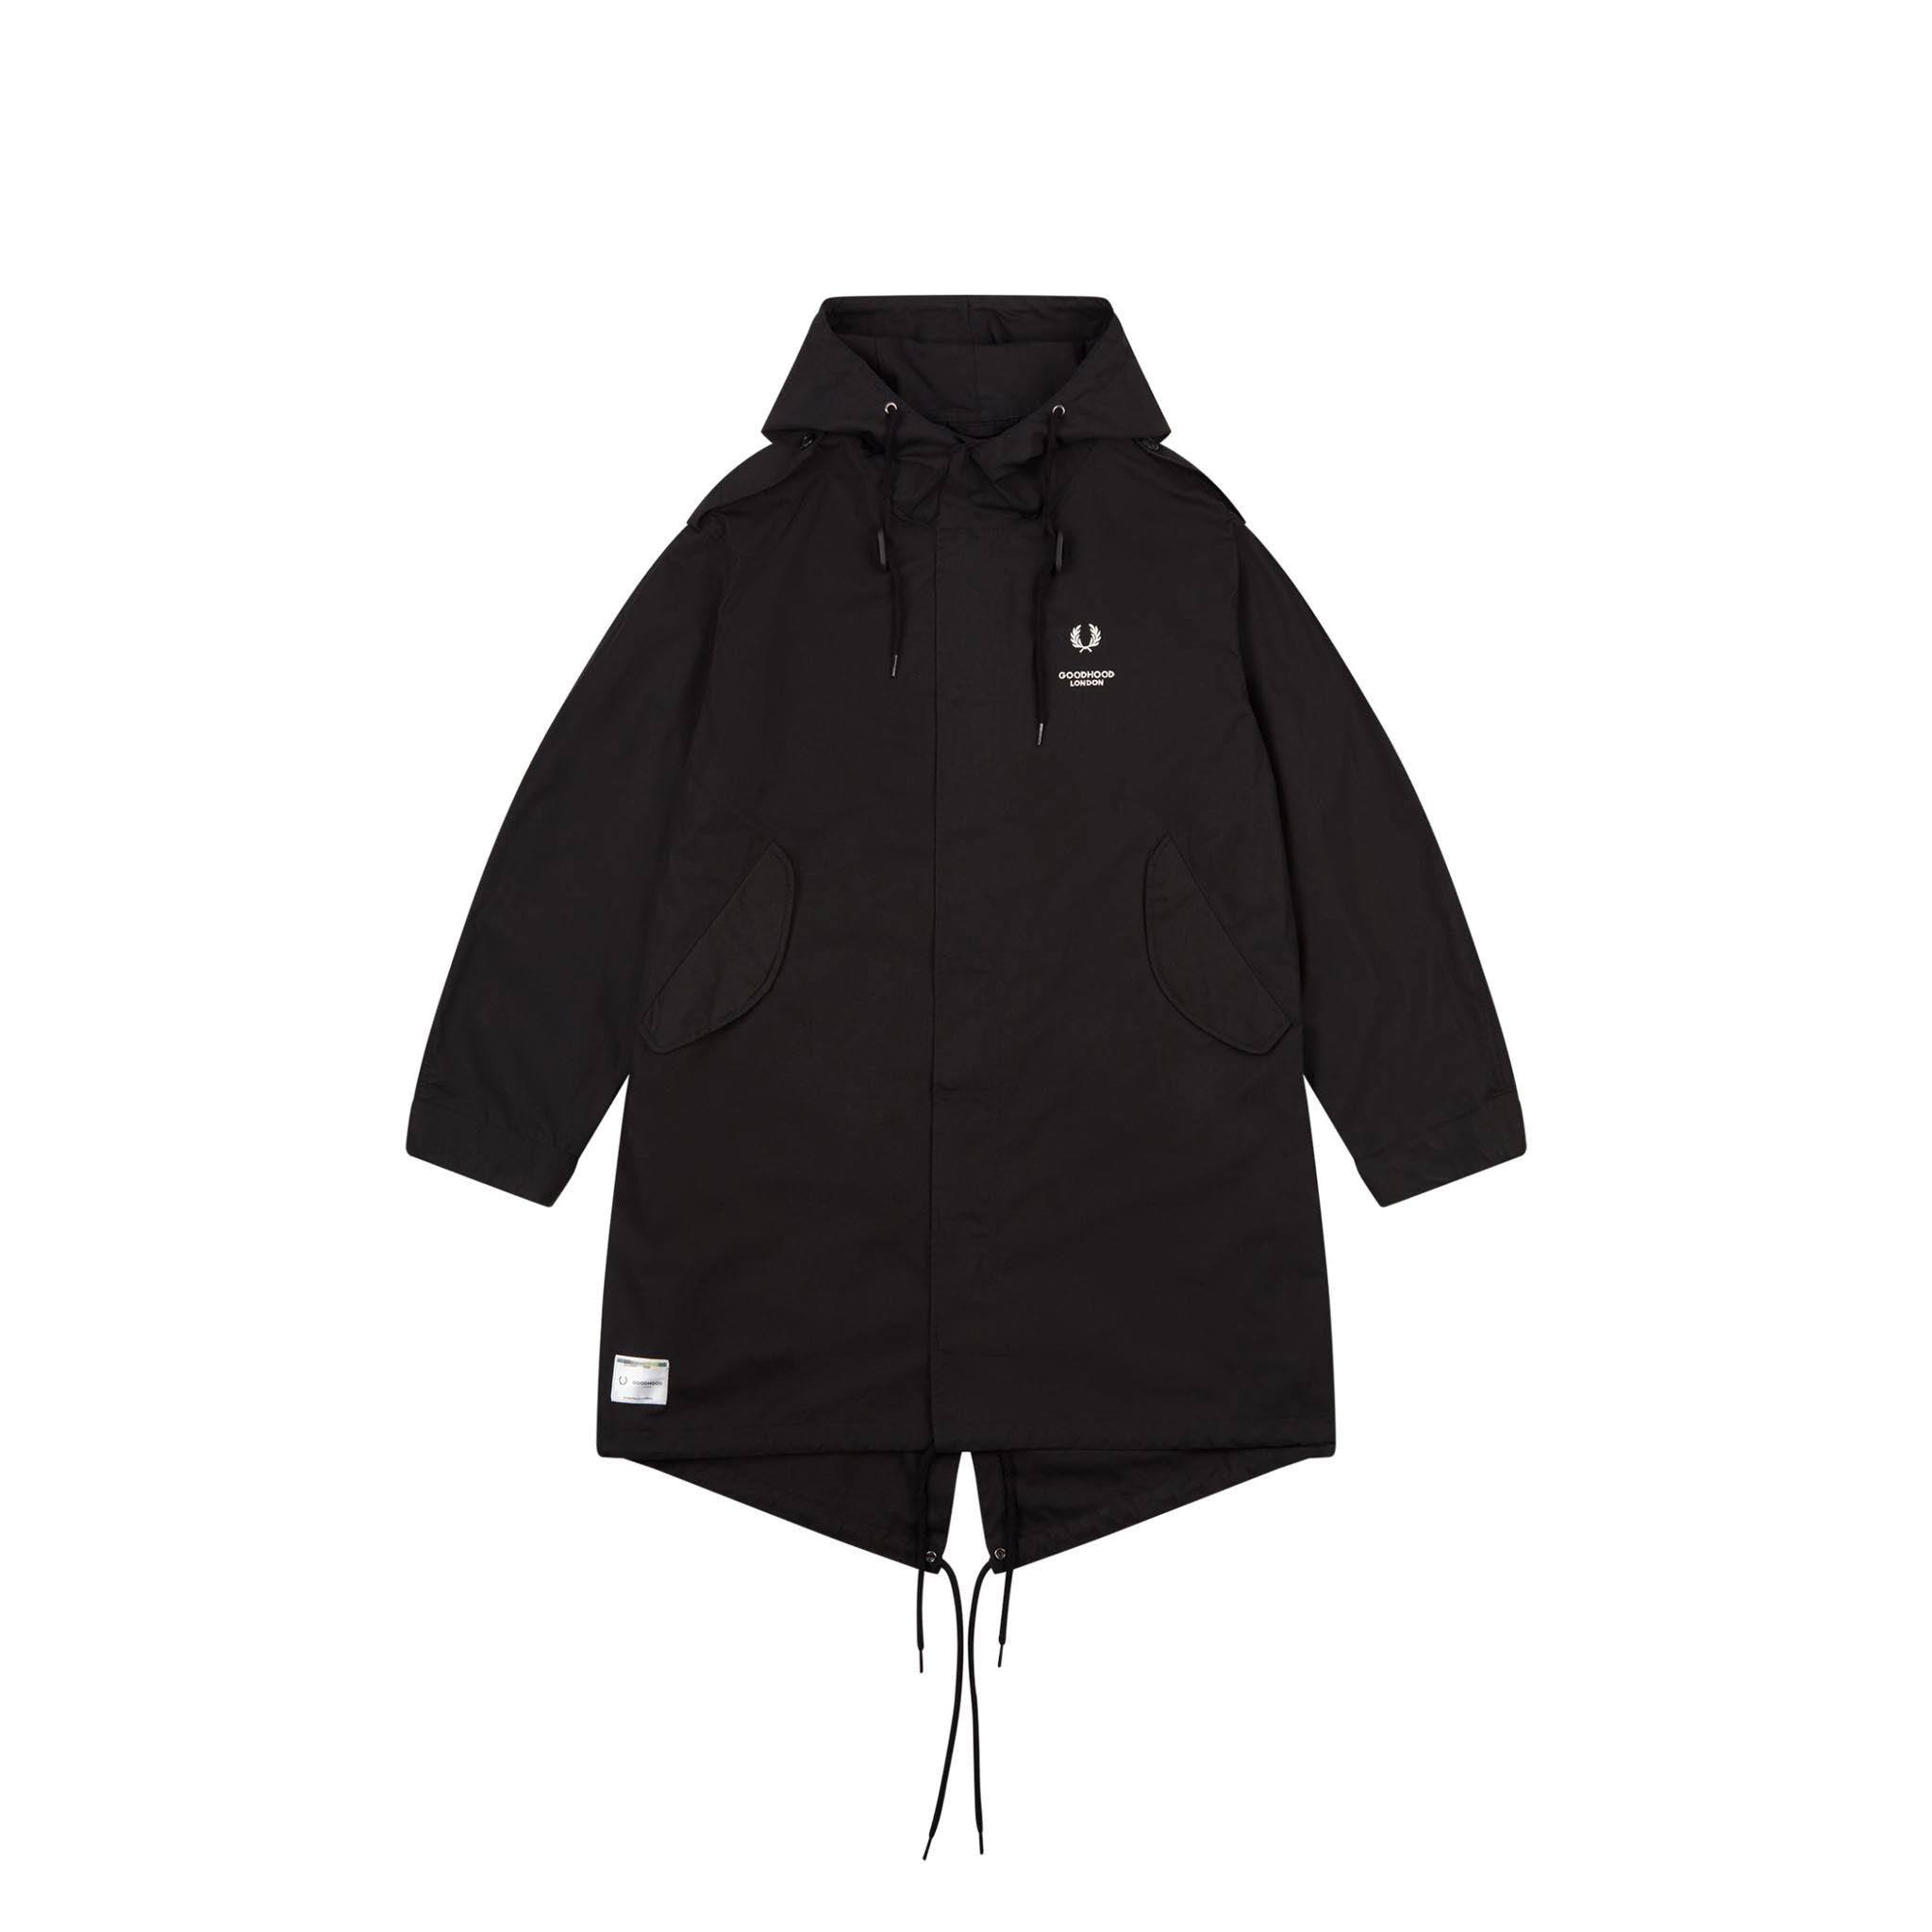 Fred Perry x Goodhood London Parka Black